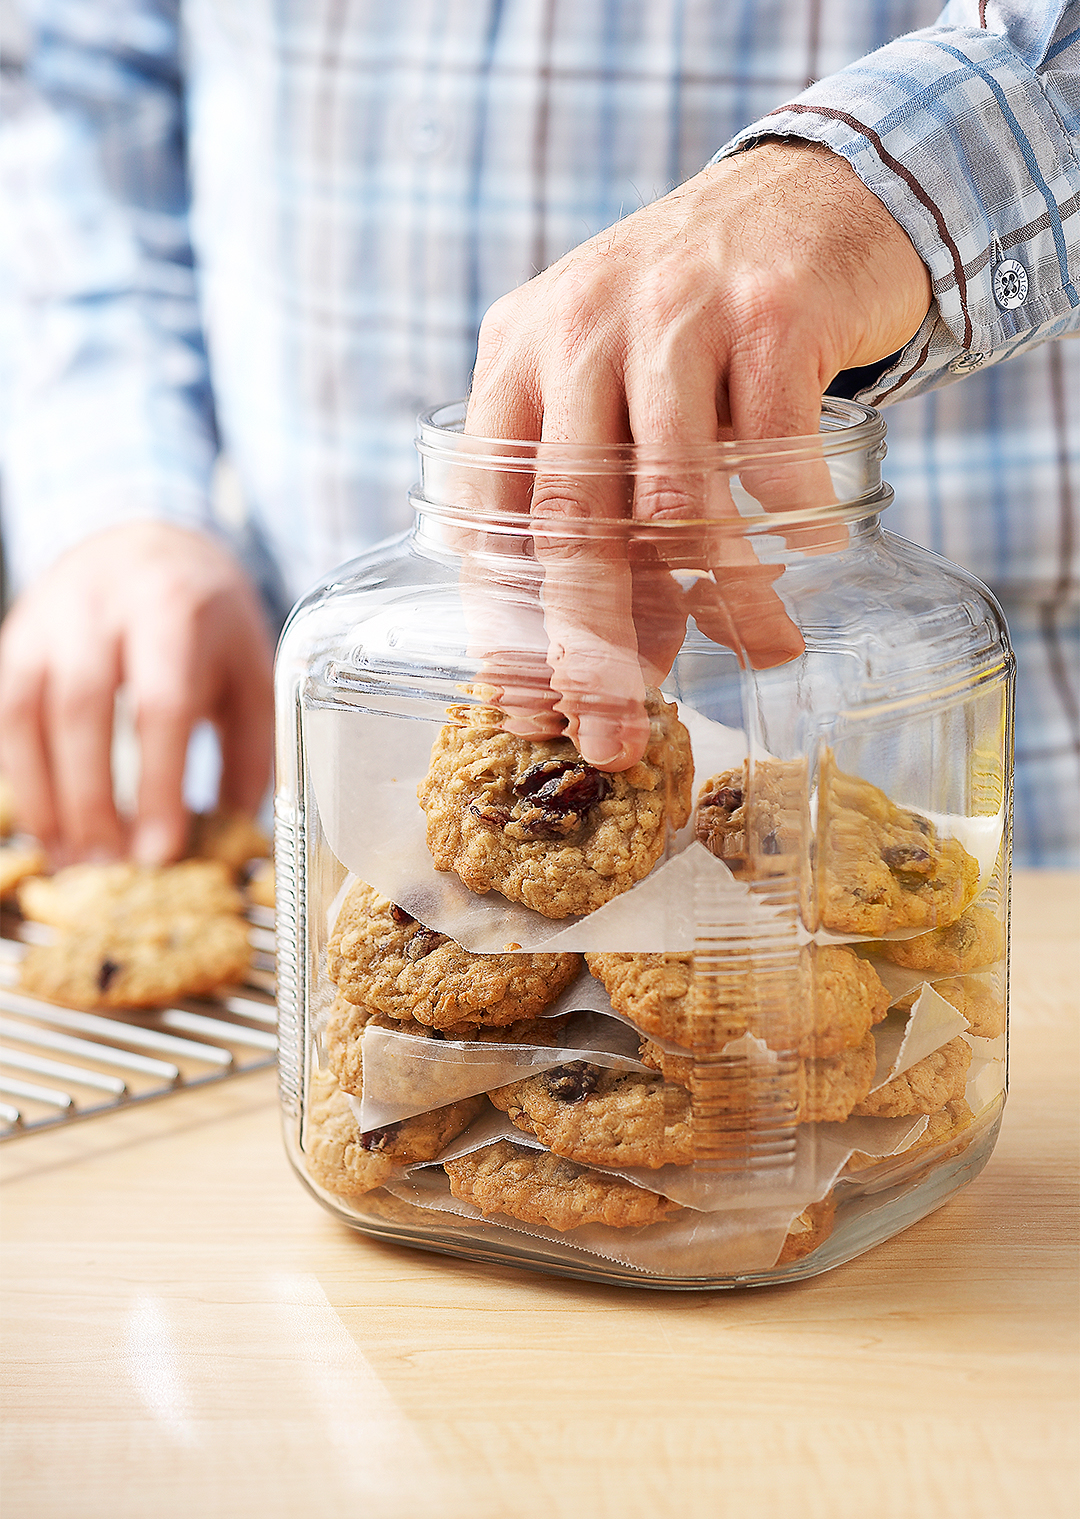 6 Secrets on How To Properly Store Cookies and Keep Them Fresh